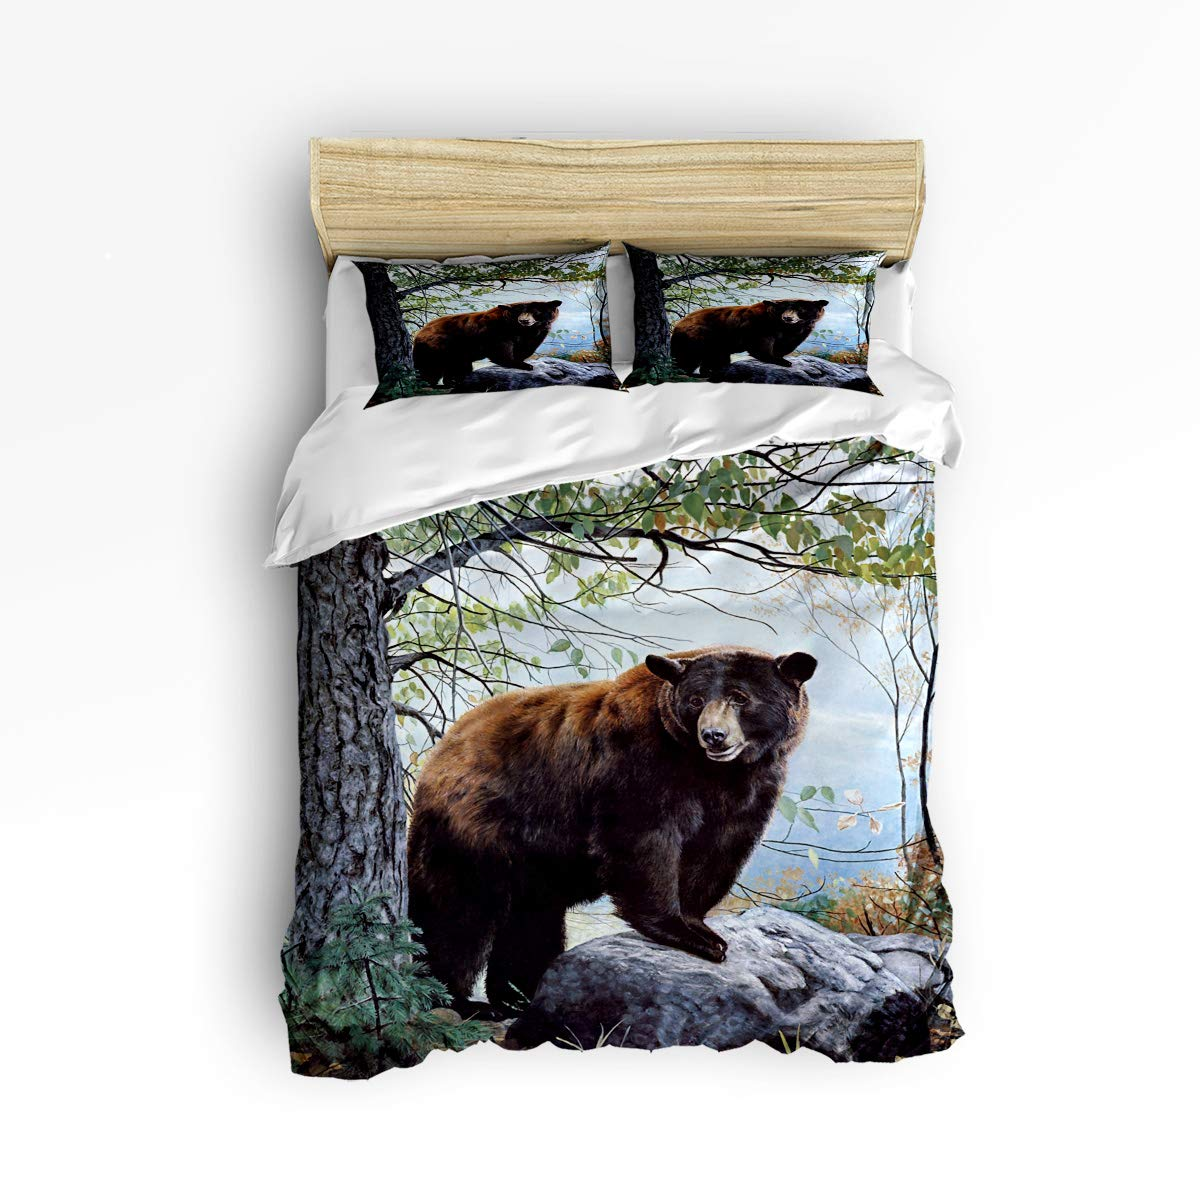 YEHO Art Gallery Full Size Cute 3 Piece Duvet Cover Sets for Boys Girls,Cute African Women with Brown Hair Pattern,Decorative Bedding Set Include 1 Comforter Cover with 2 Pillow Cases